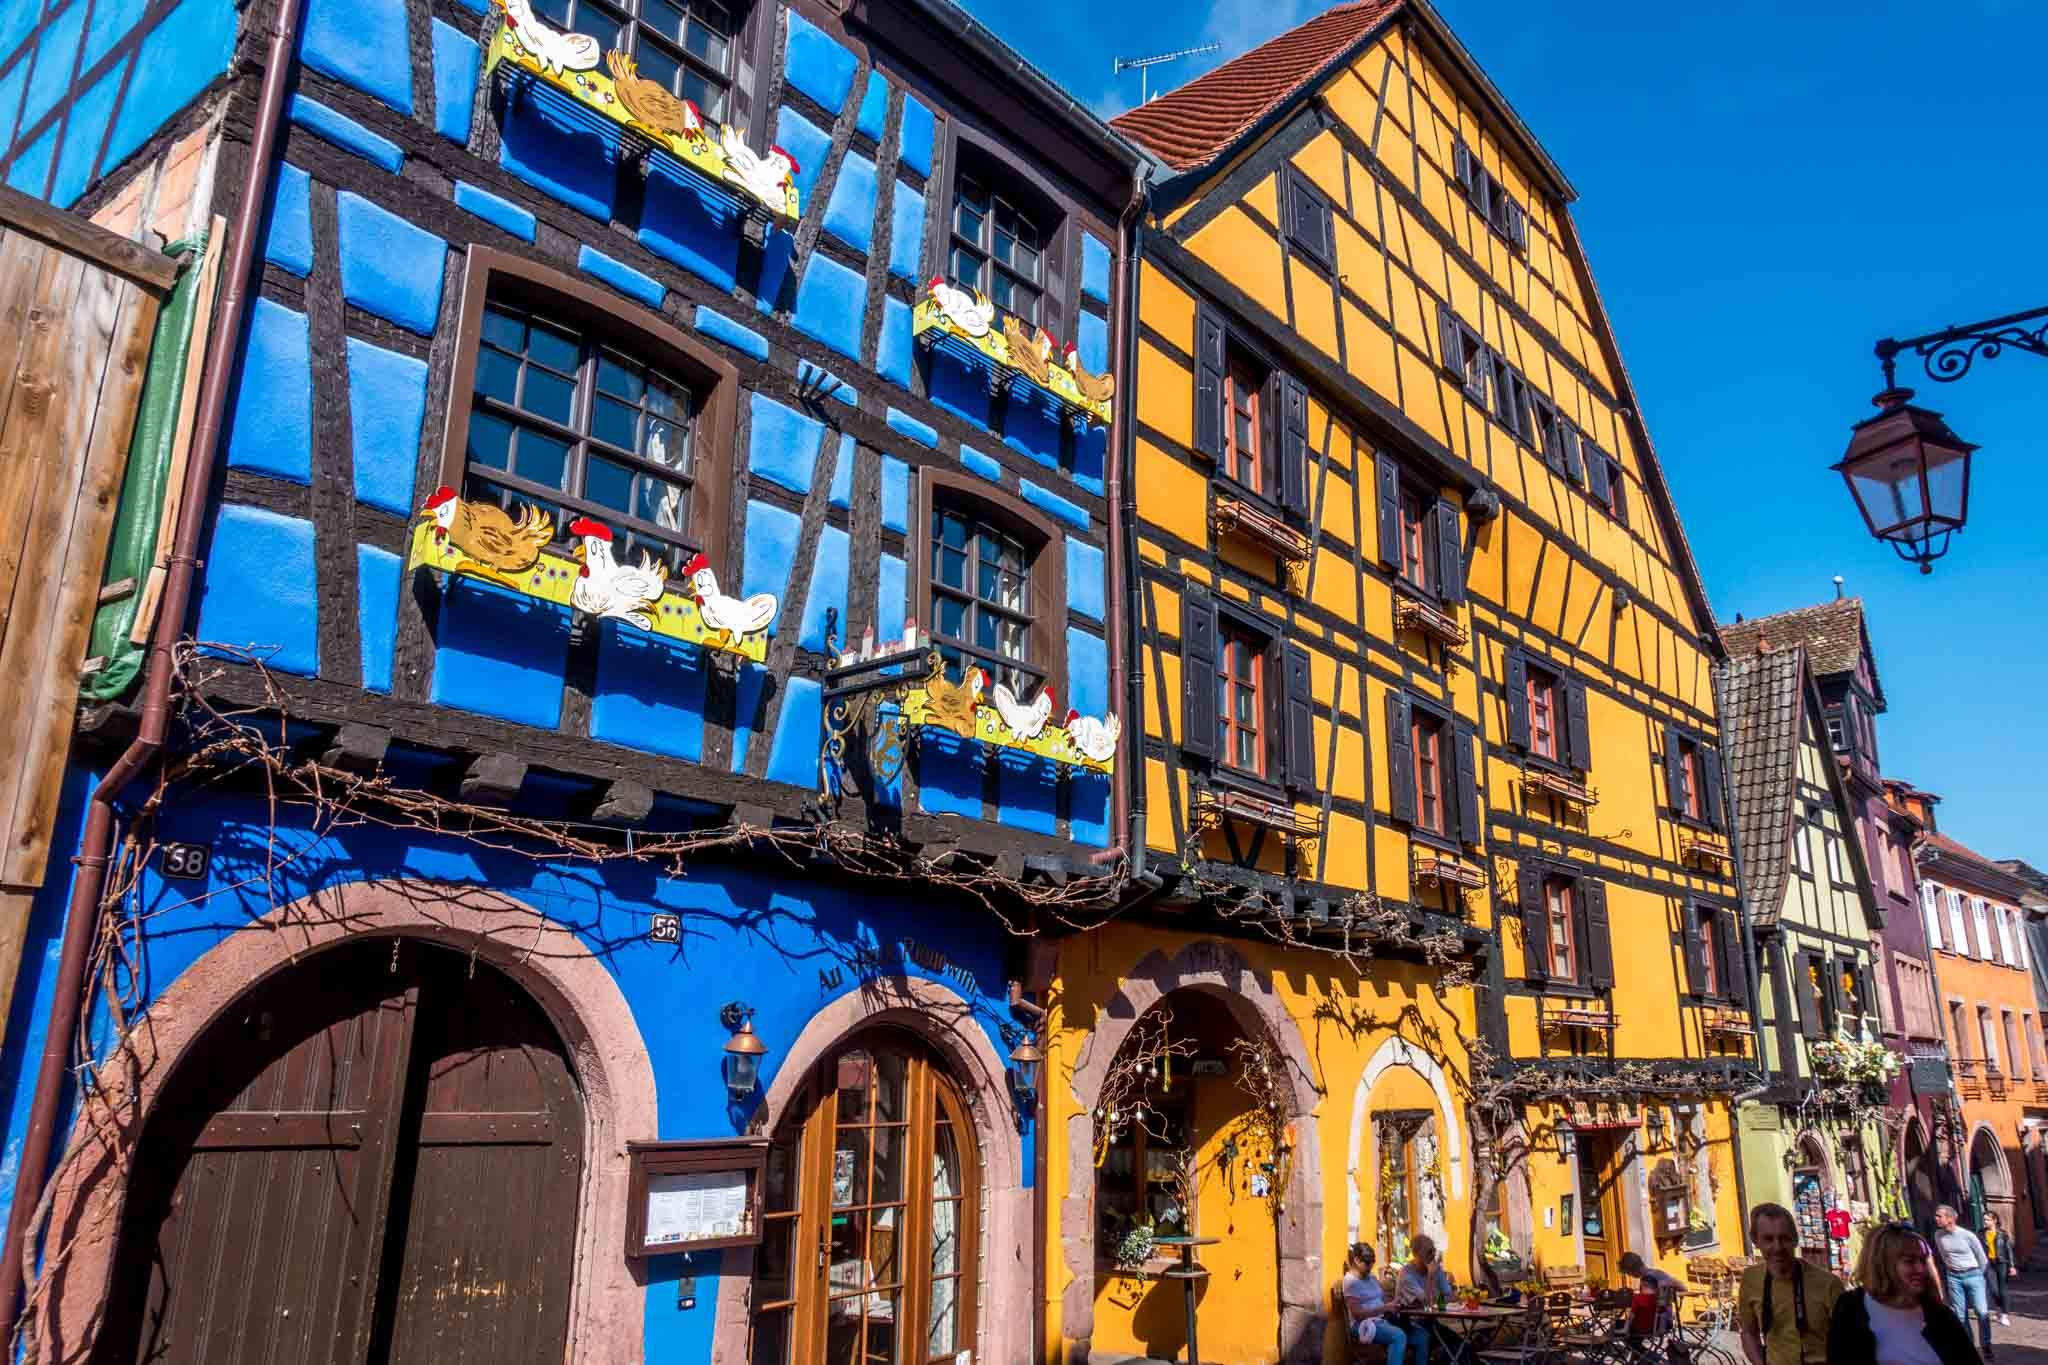 Blue and yellow half-timbered buildings line the streets in Riquewihr, France